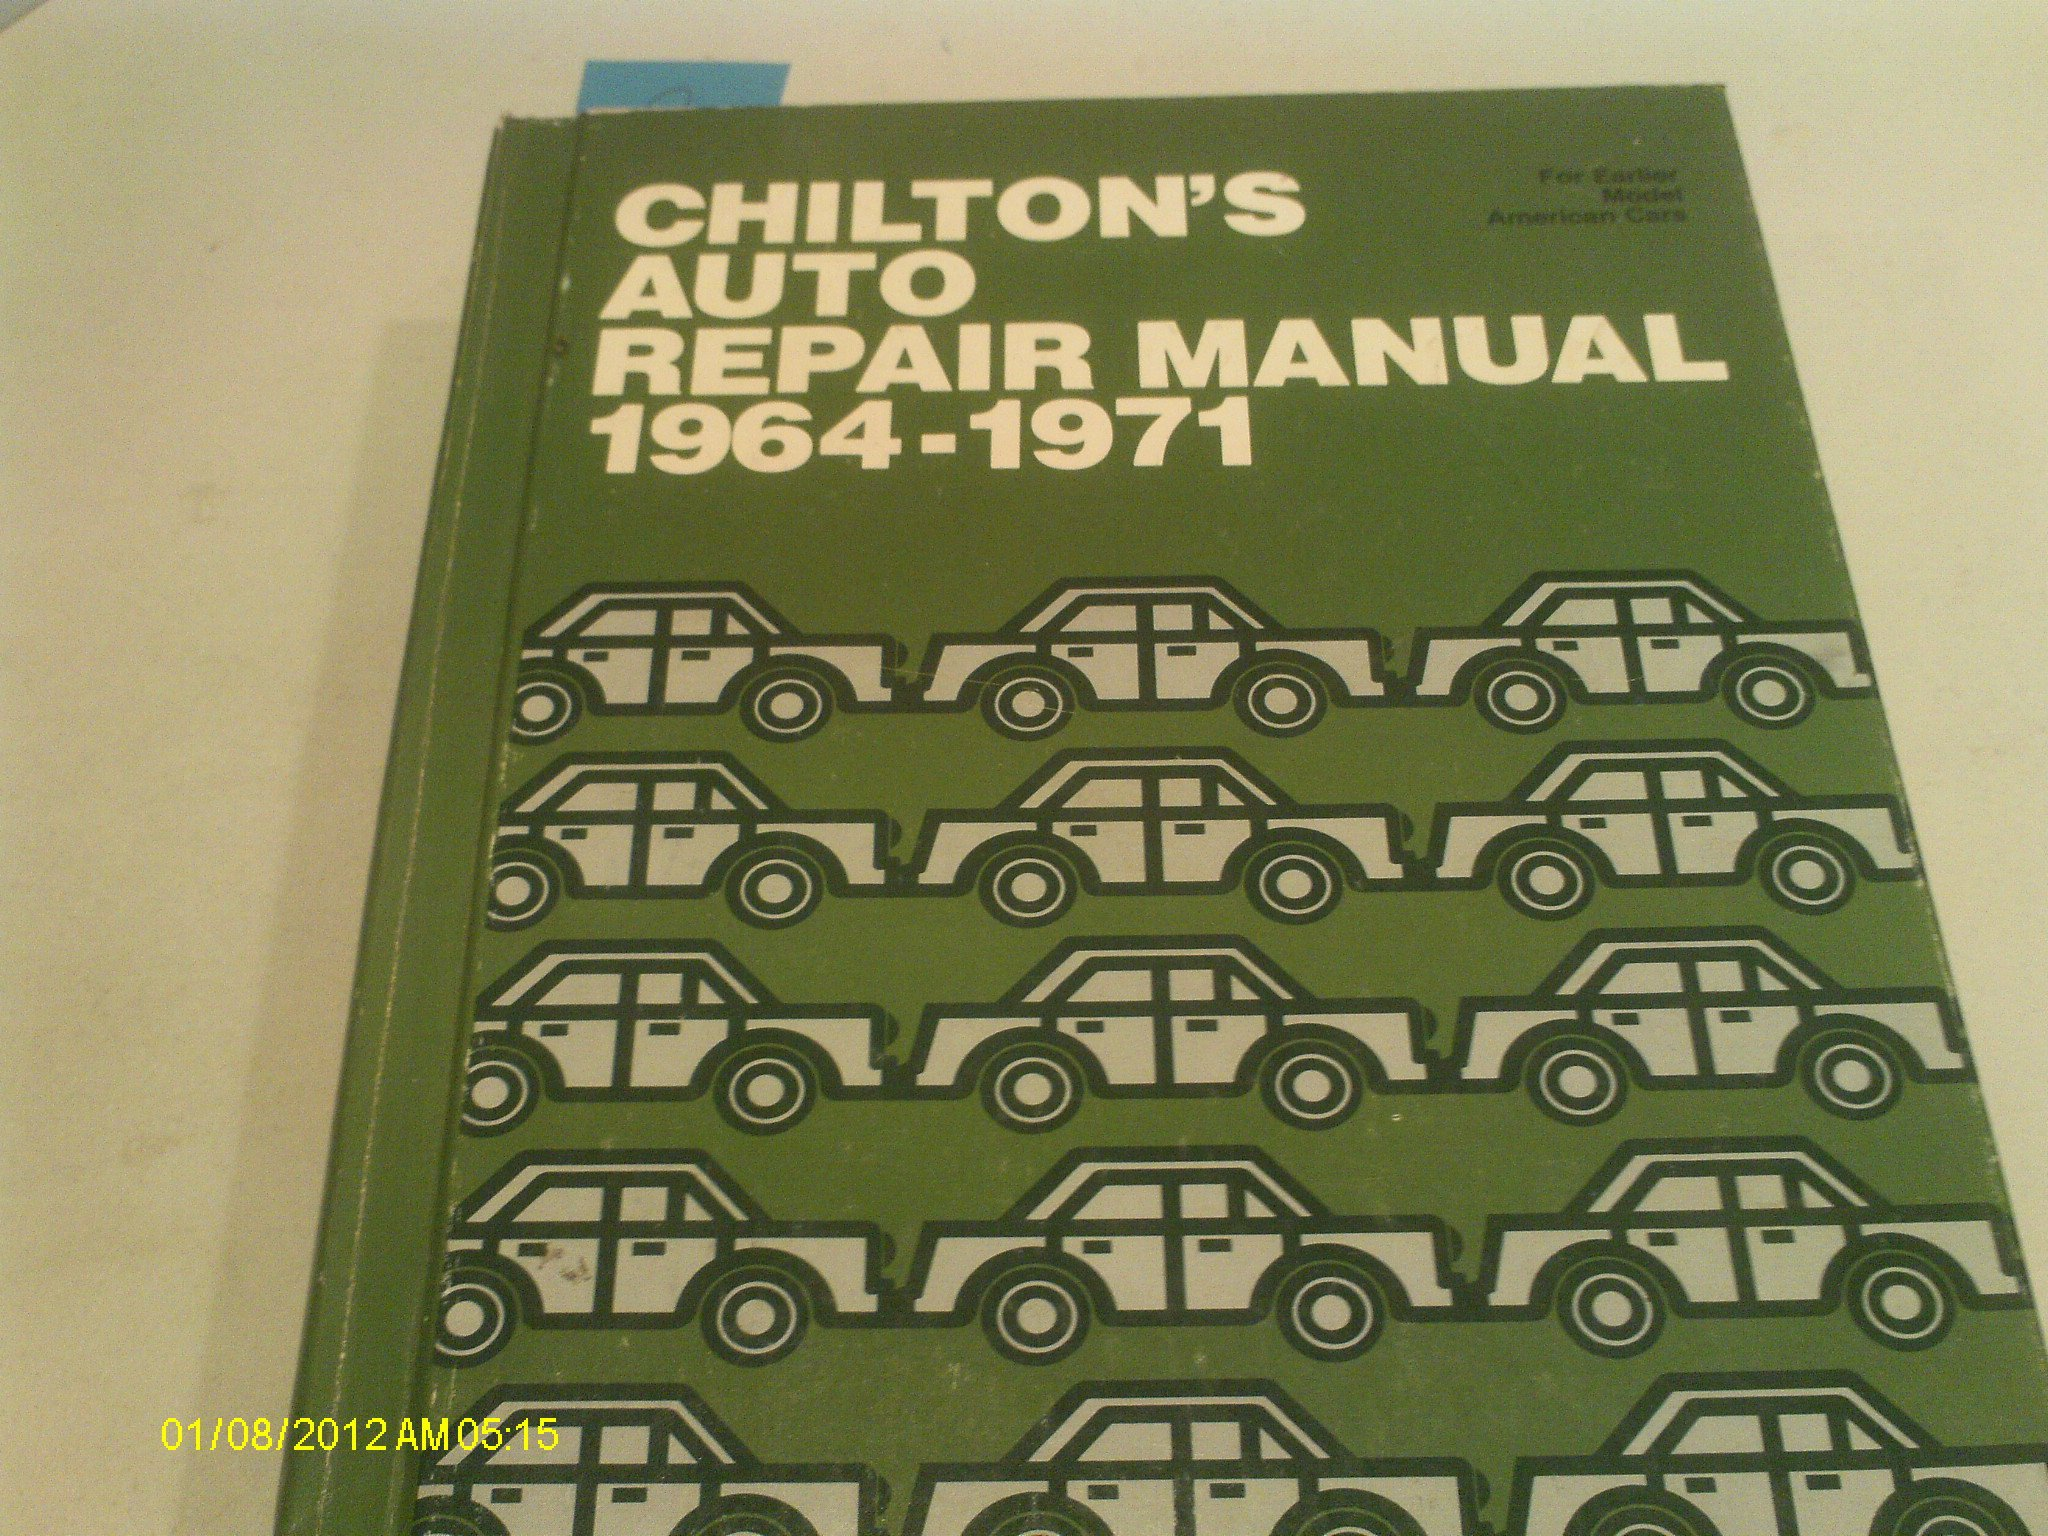 Chilton's Auto Repair Manual 1964-1971, Copyright 1971: Chilton Book  Company: Amazon.com: Books